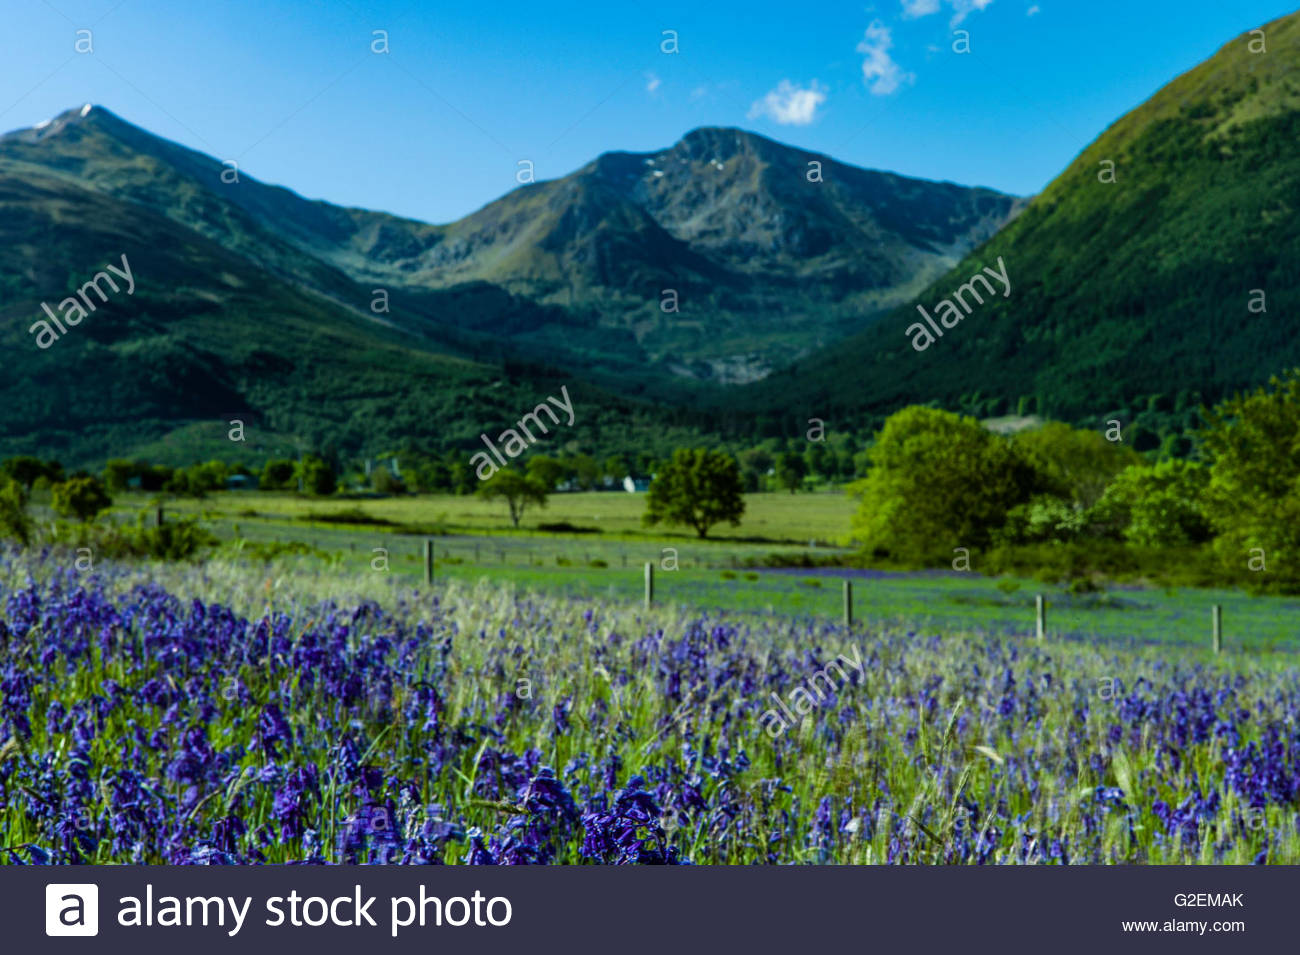 North Ballachulish, Fort William, Scotland, UK. 30th May 2016. Looking east across a landscape of bluebells and - Stock Image